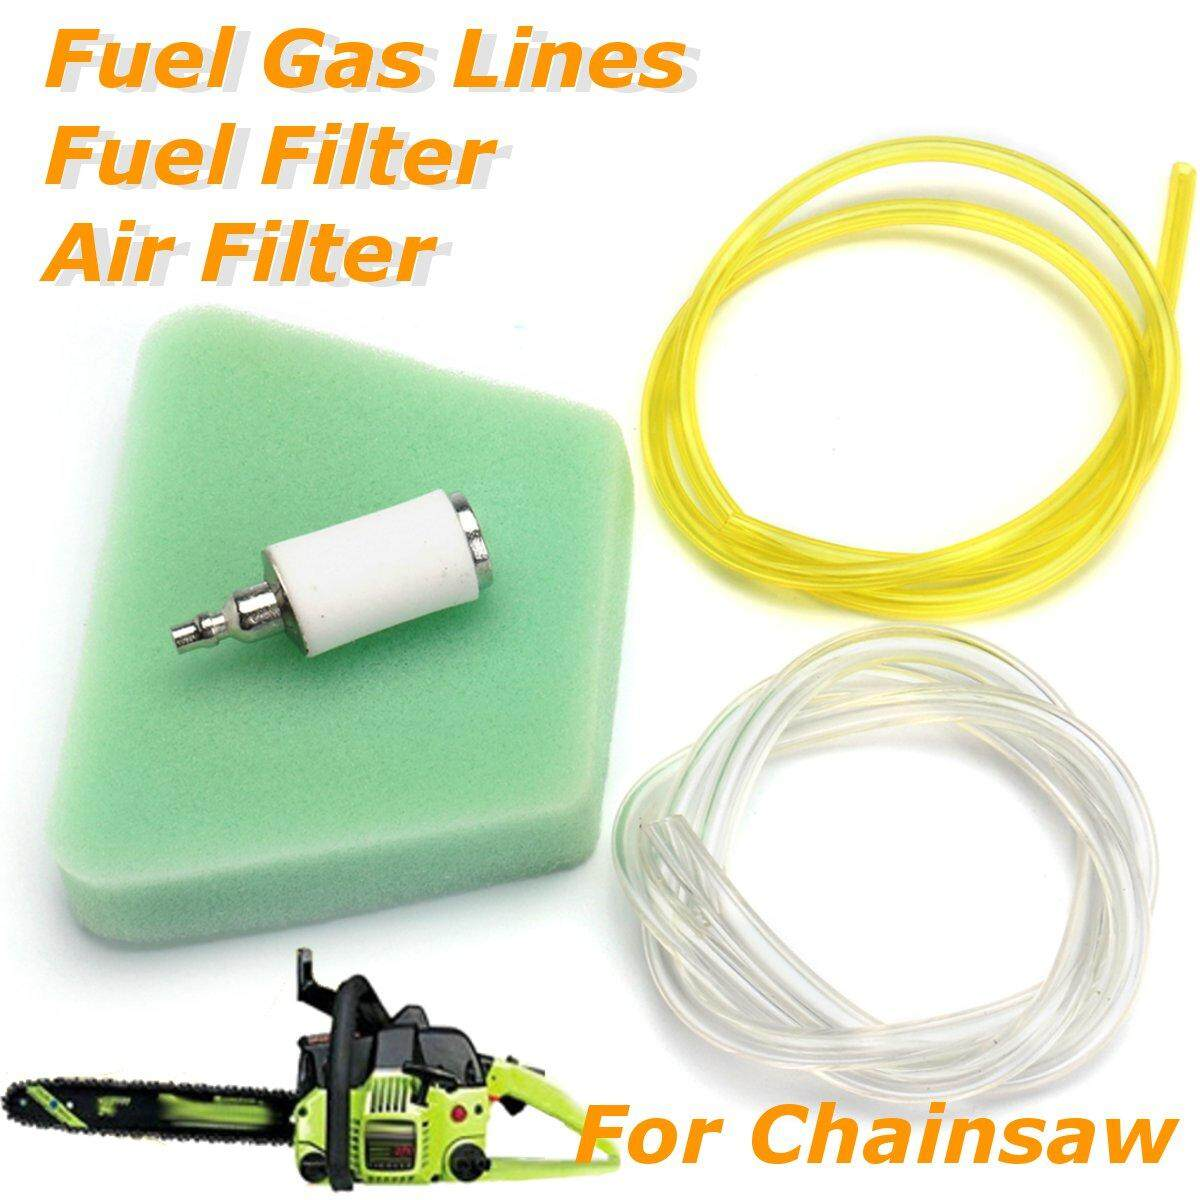 4Pcs/set Air Filter Fuel Filter Fuel Gas Lines for Poulan Craftsman Chainsaw